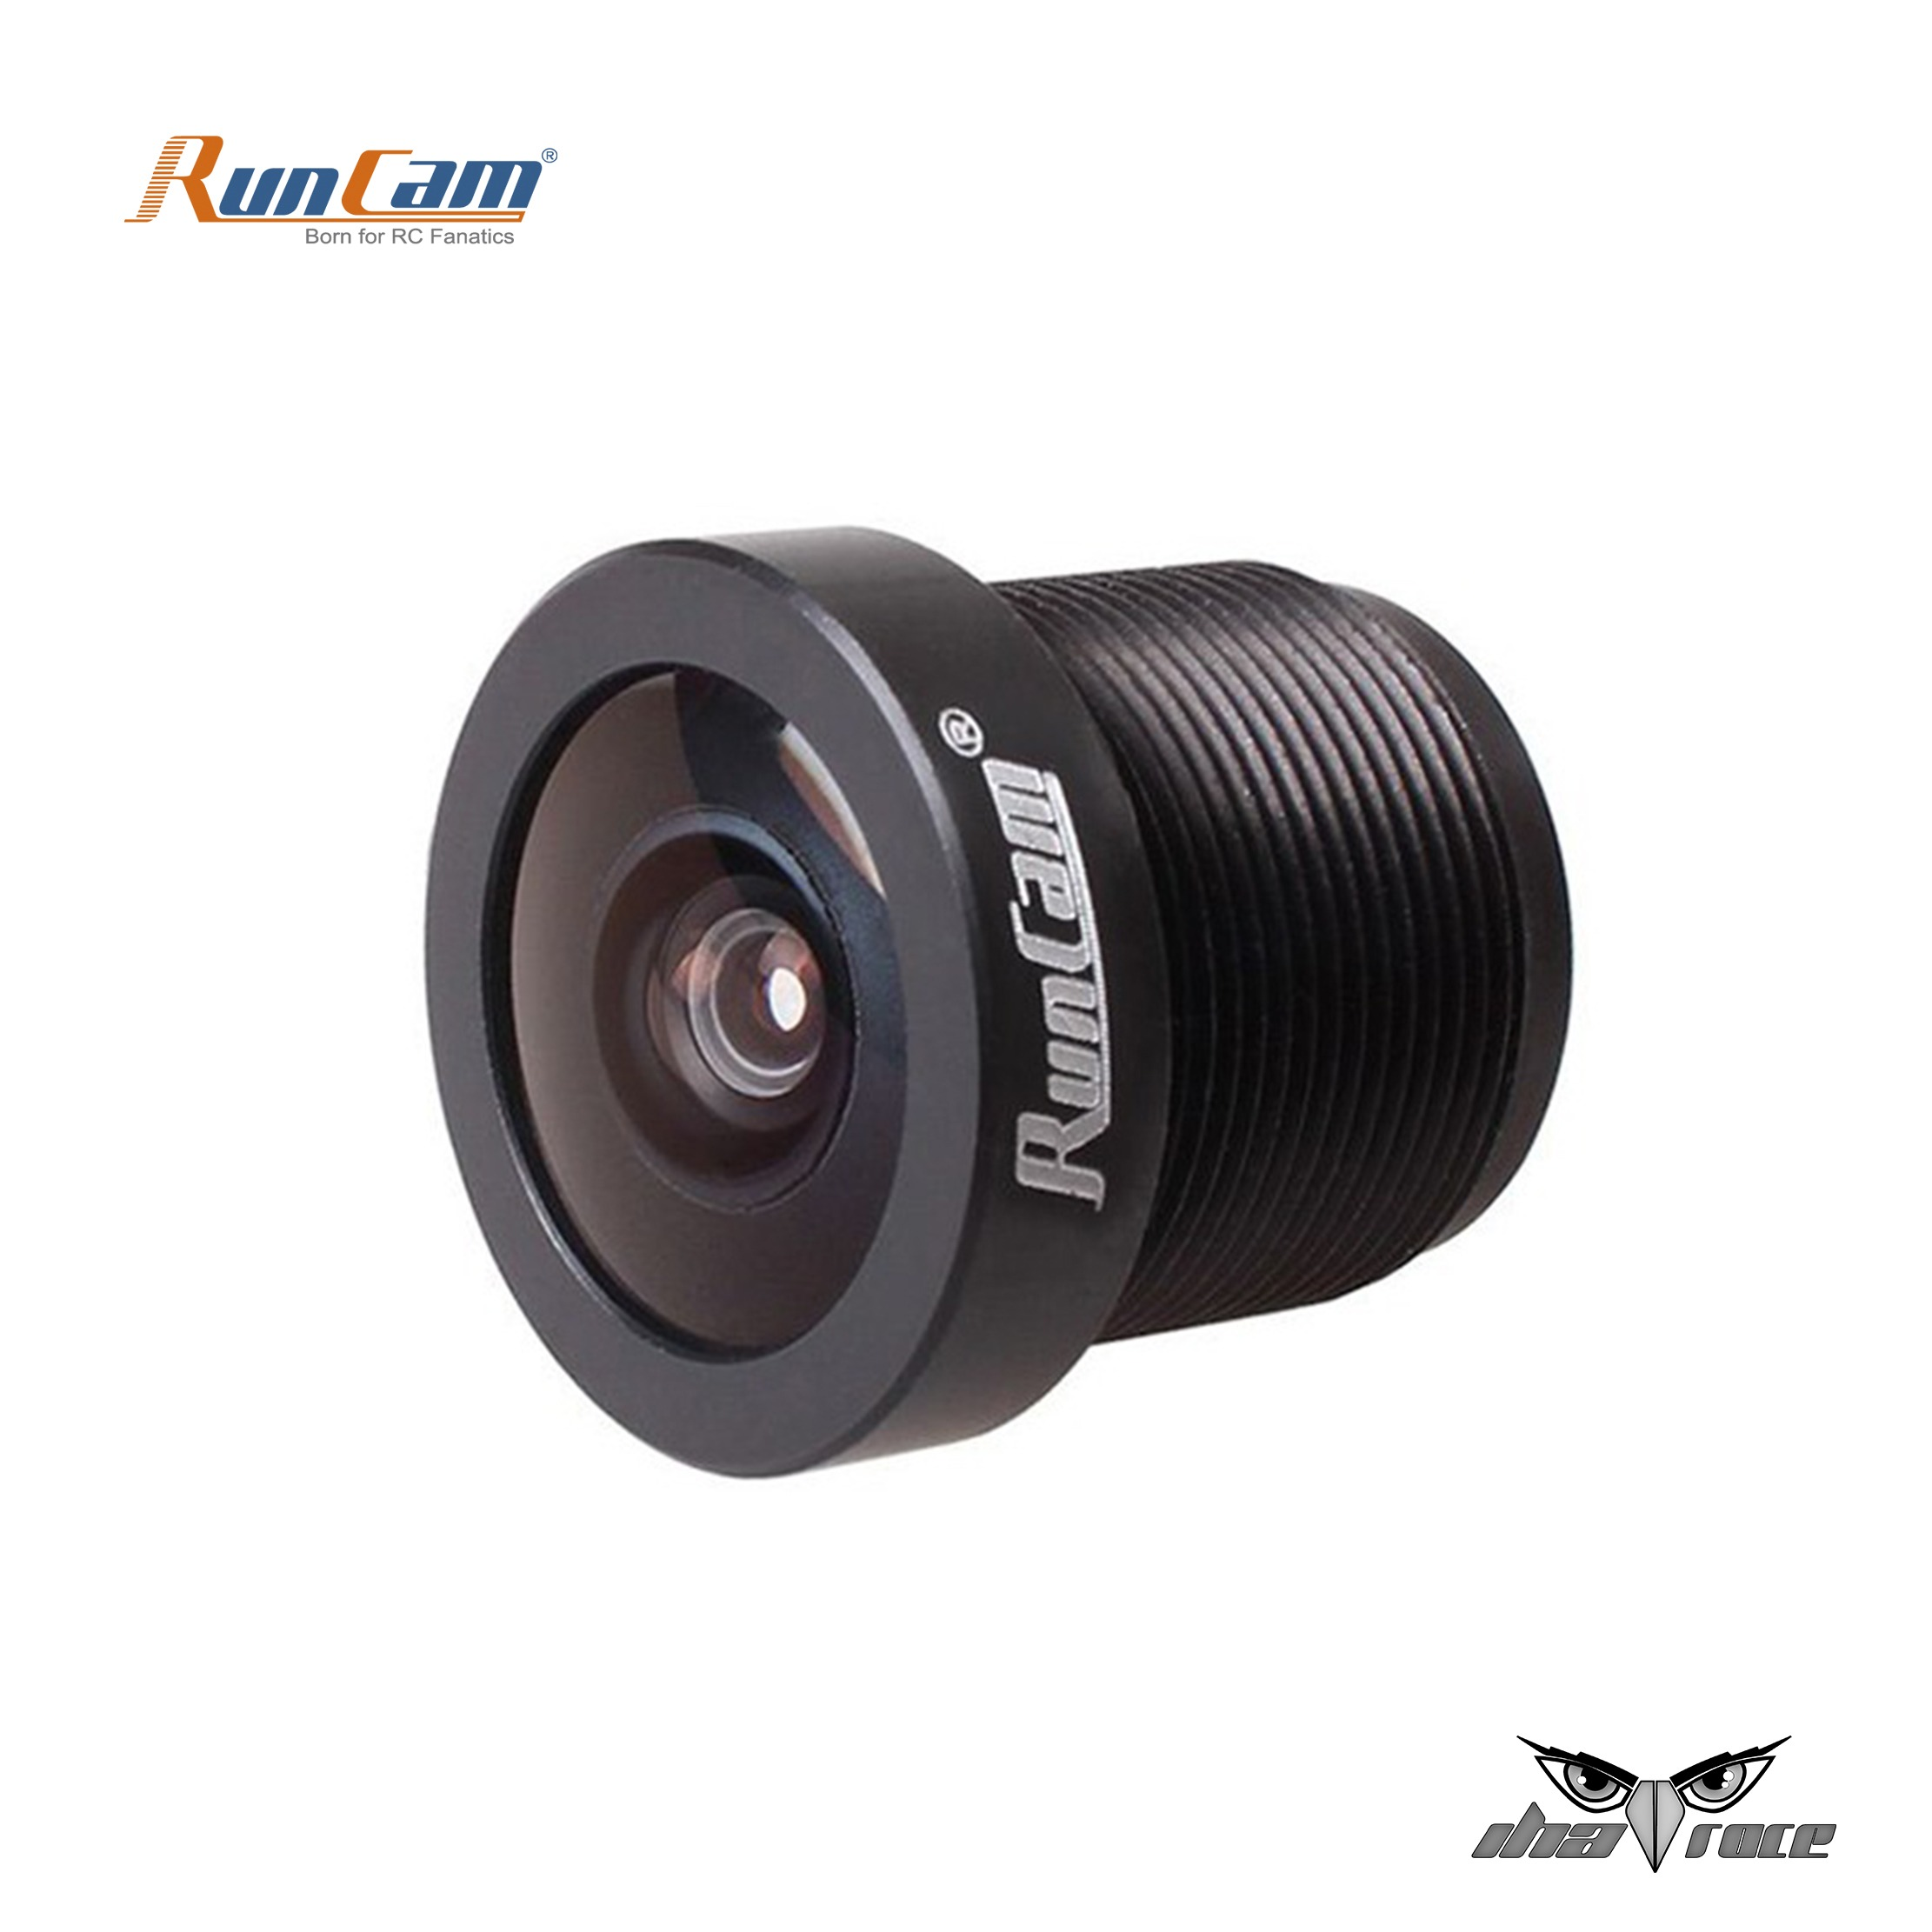 Lente RunCam 2.1 / 2.3 mm RC21-23 FPV Short